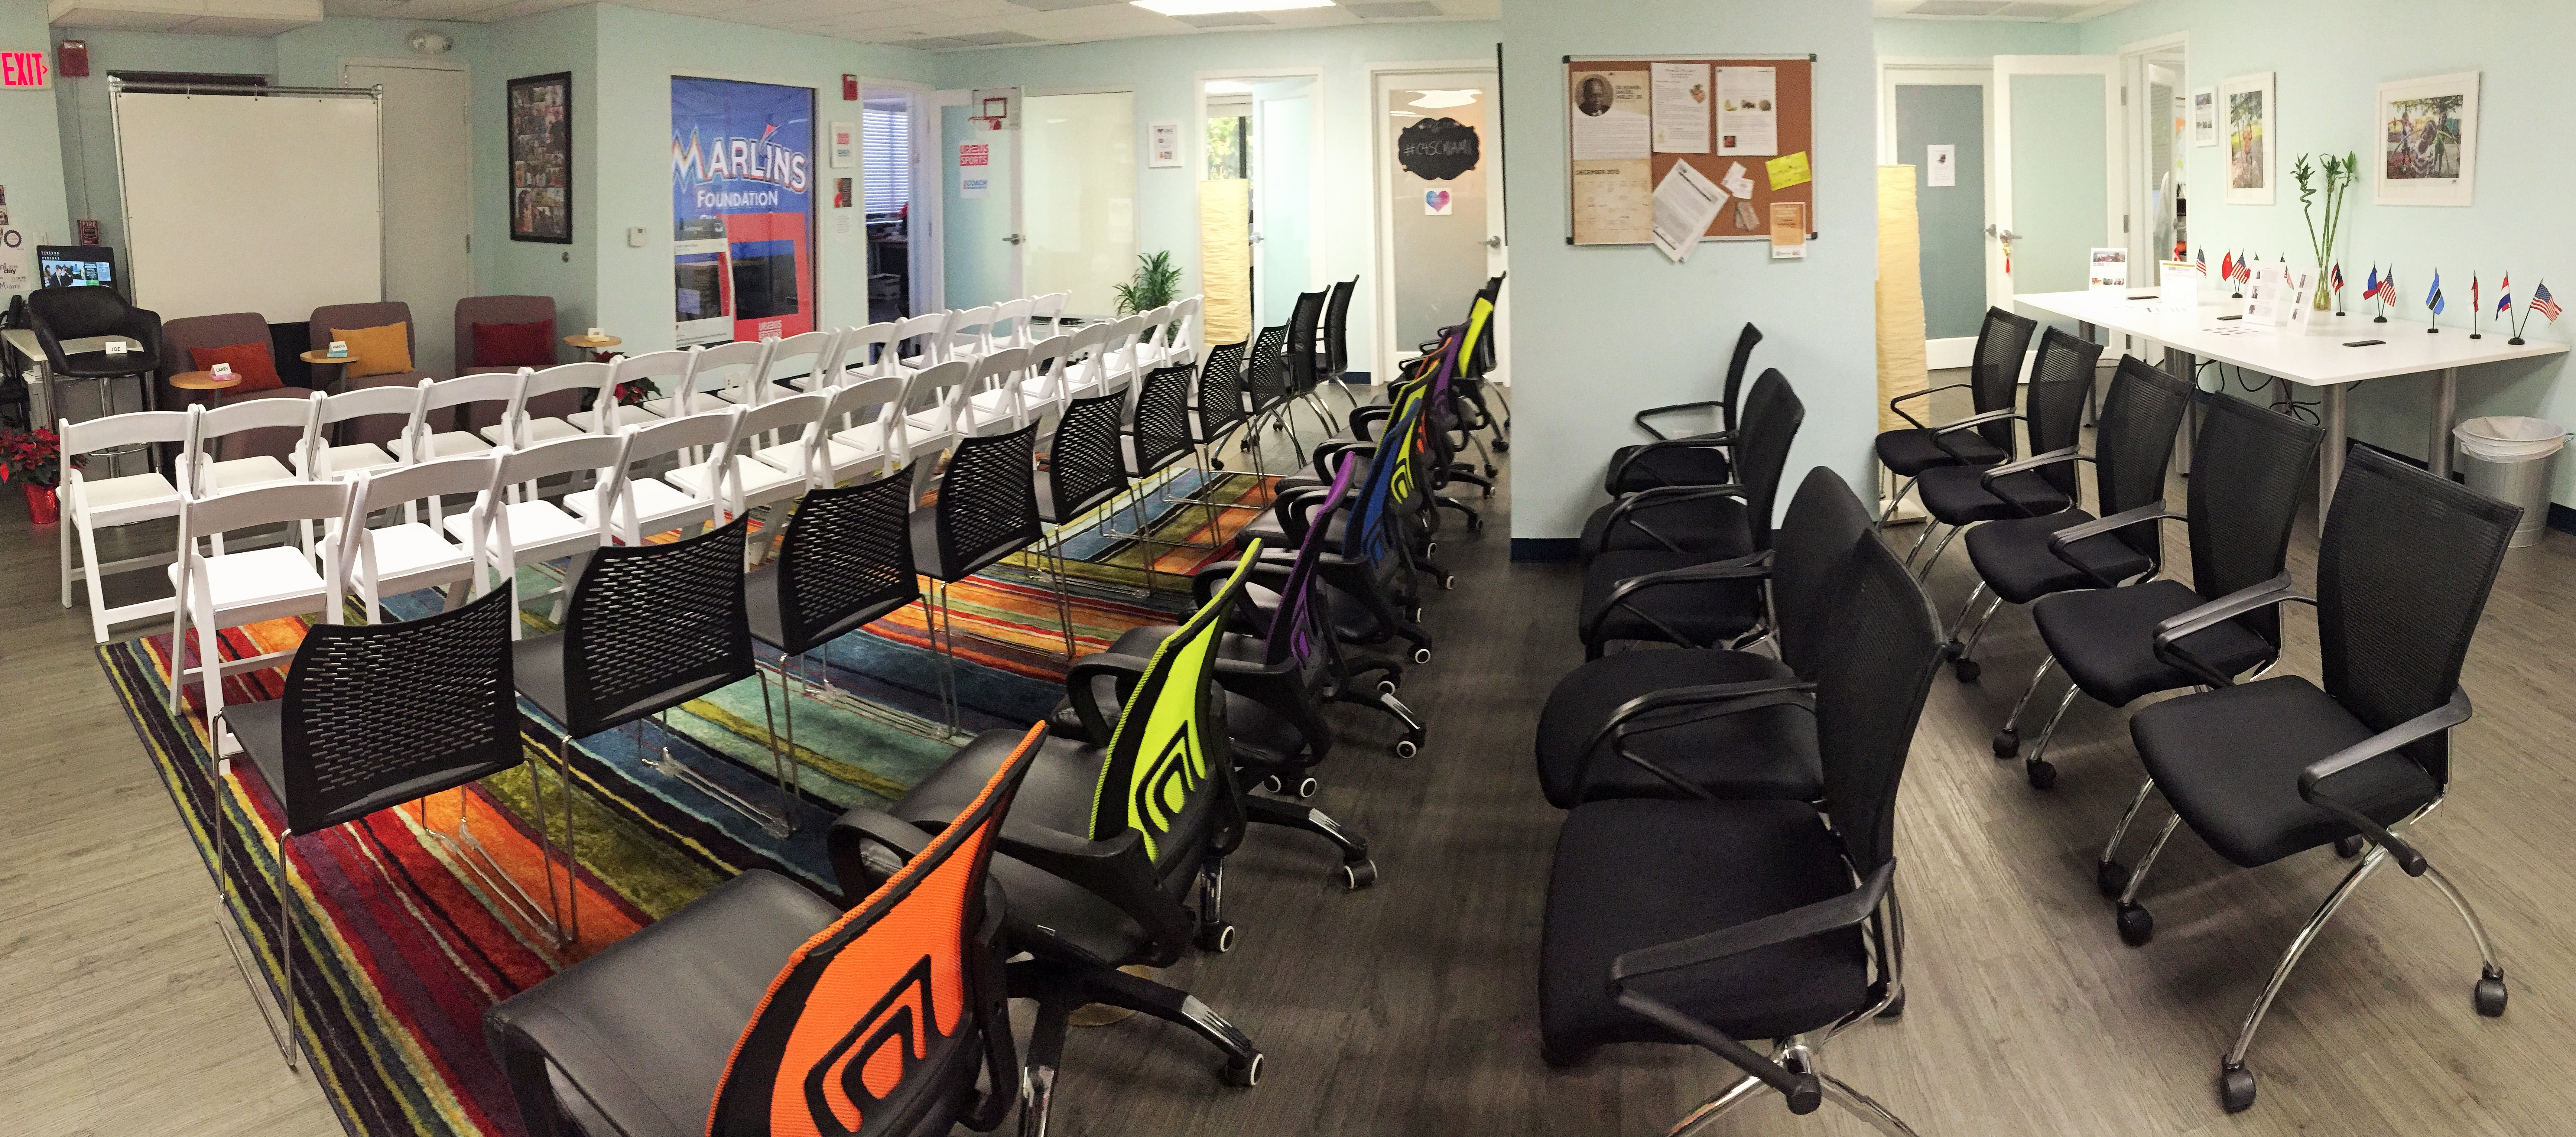 Miami Meeting Space Main Coworking Space with Chairs